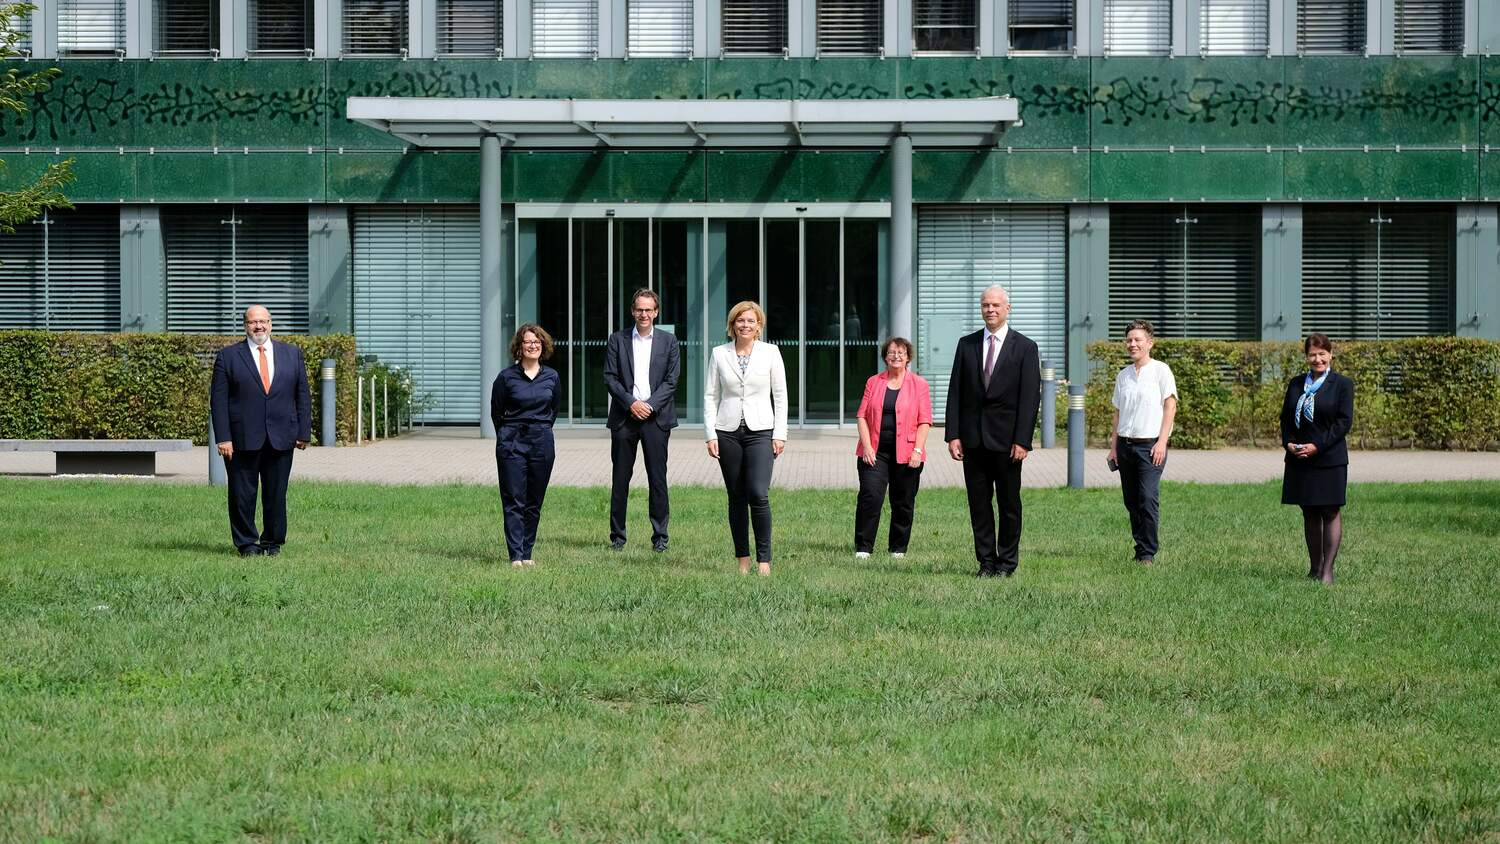 Federal Minister Julia Klöckner with members of the Scientific Advisory Board for Agricultural Policy, Food and Consumer Health Protection (WBAE) in Bonn